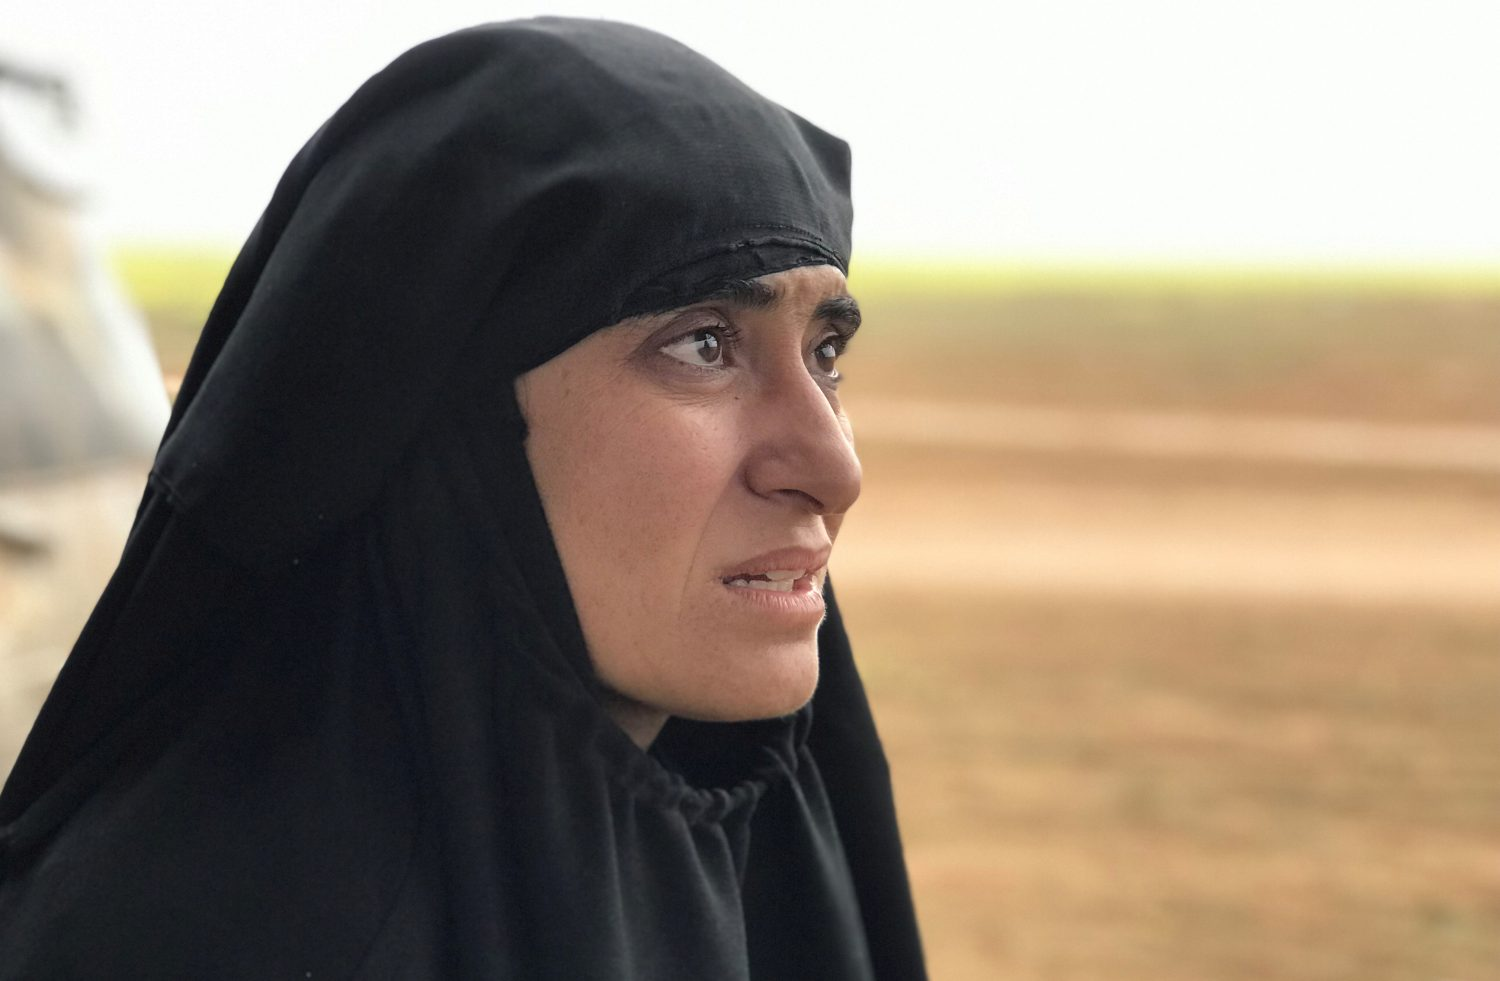 Yazidi woman Salwa Sayed al-Omar, who escaped from the Islamic State, talks during an interview with Reuters near the village of Baghouz, Deir Al Zor province, in Syria March 7, 2019. REUTERS/STRINGER